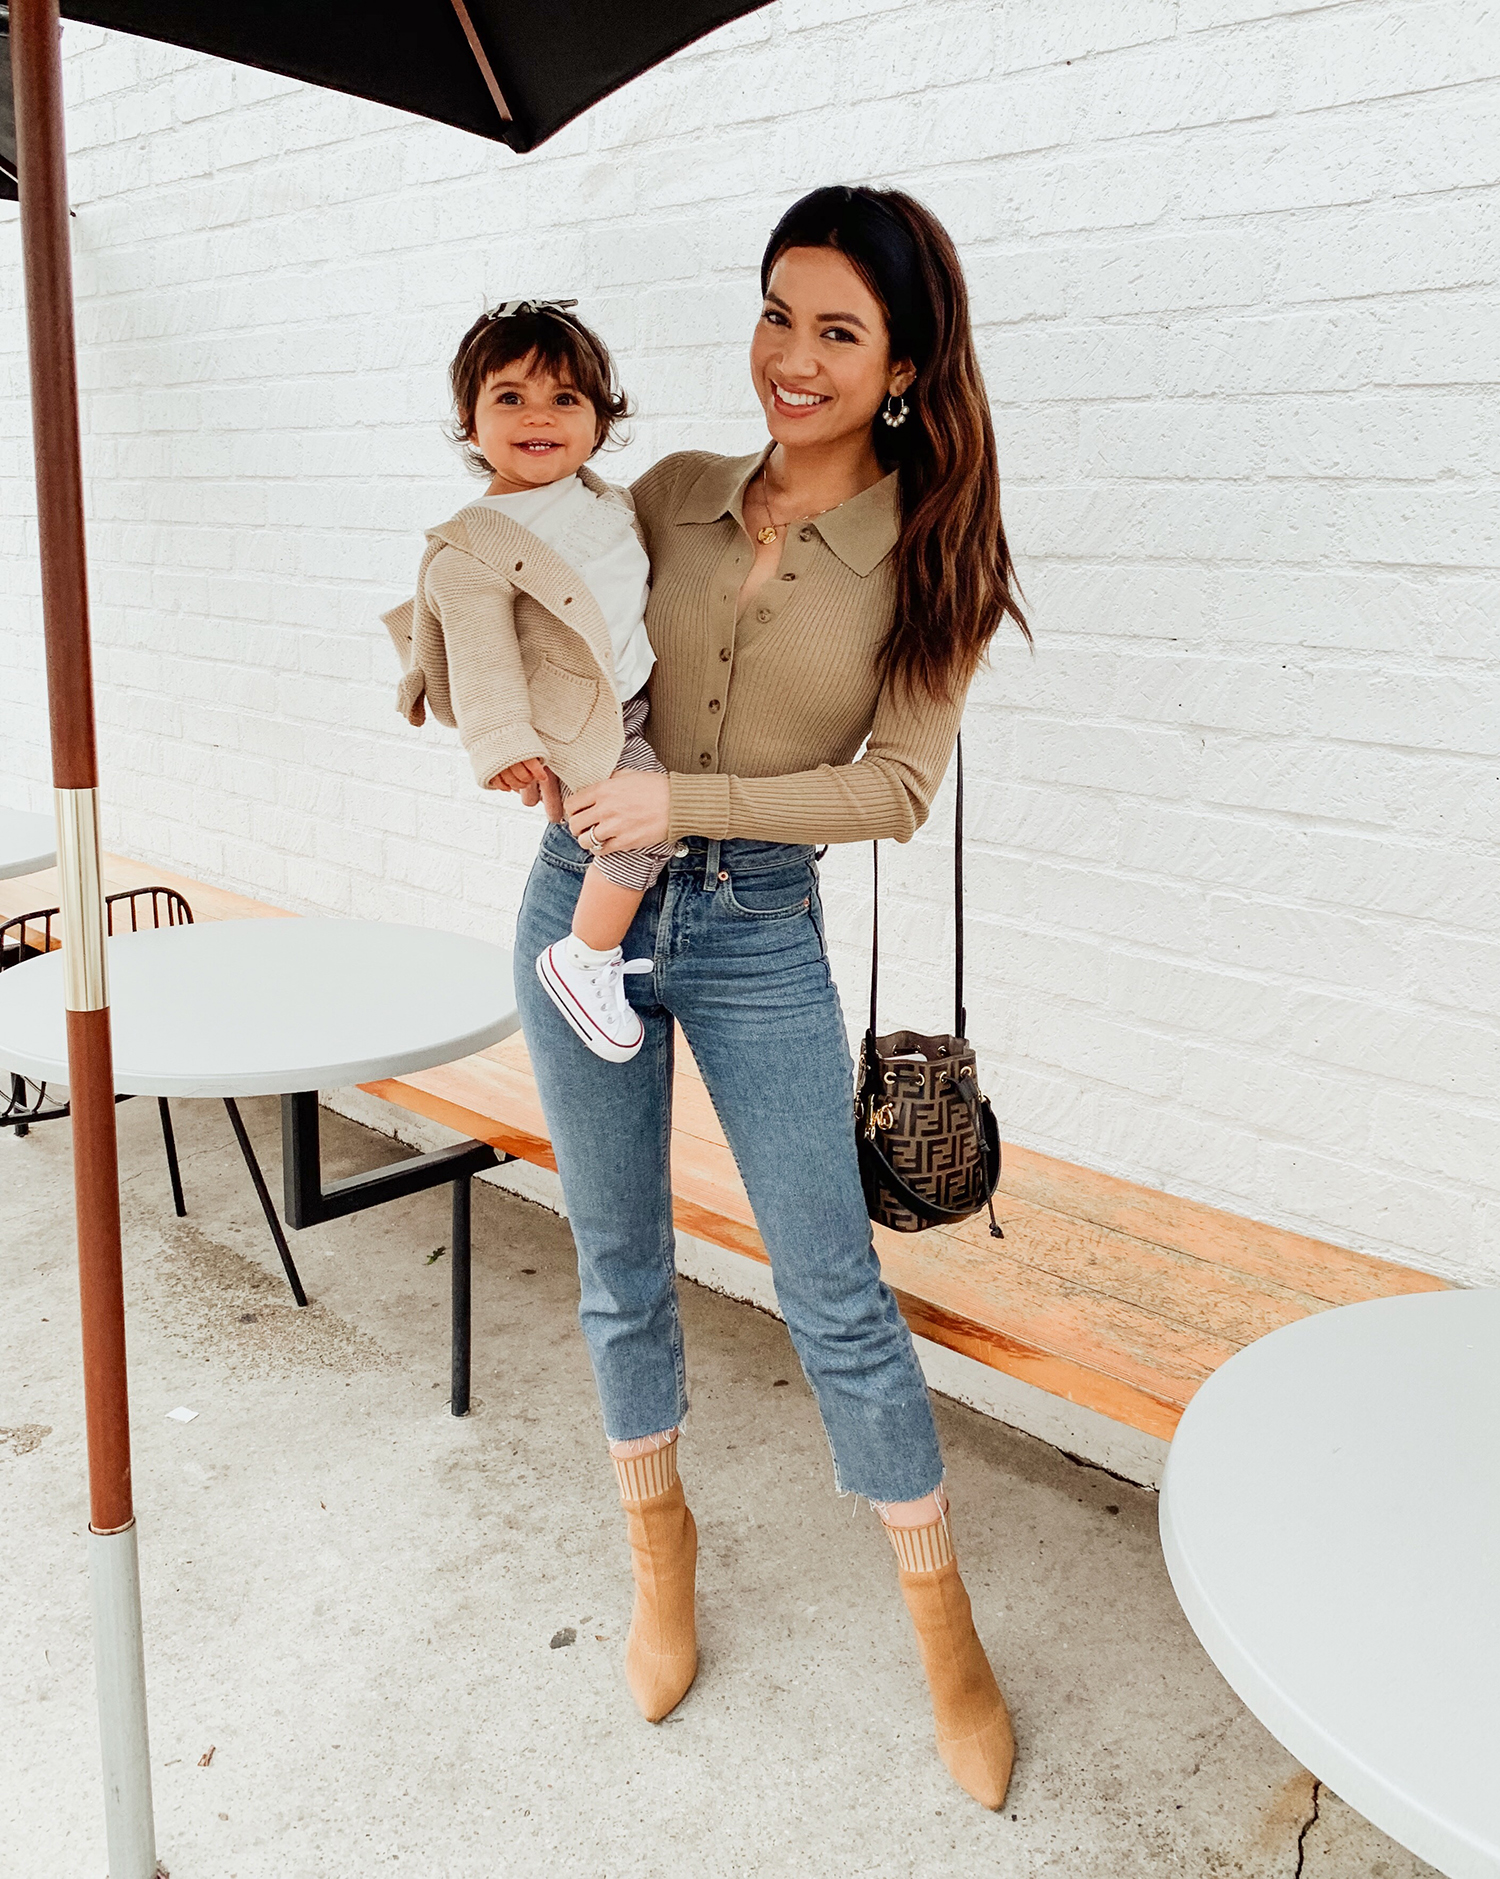 e19dfba4220 My Favorite Pregnancy Outfits Roundup - mywhiteT